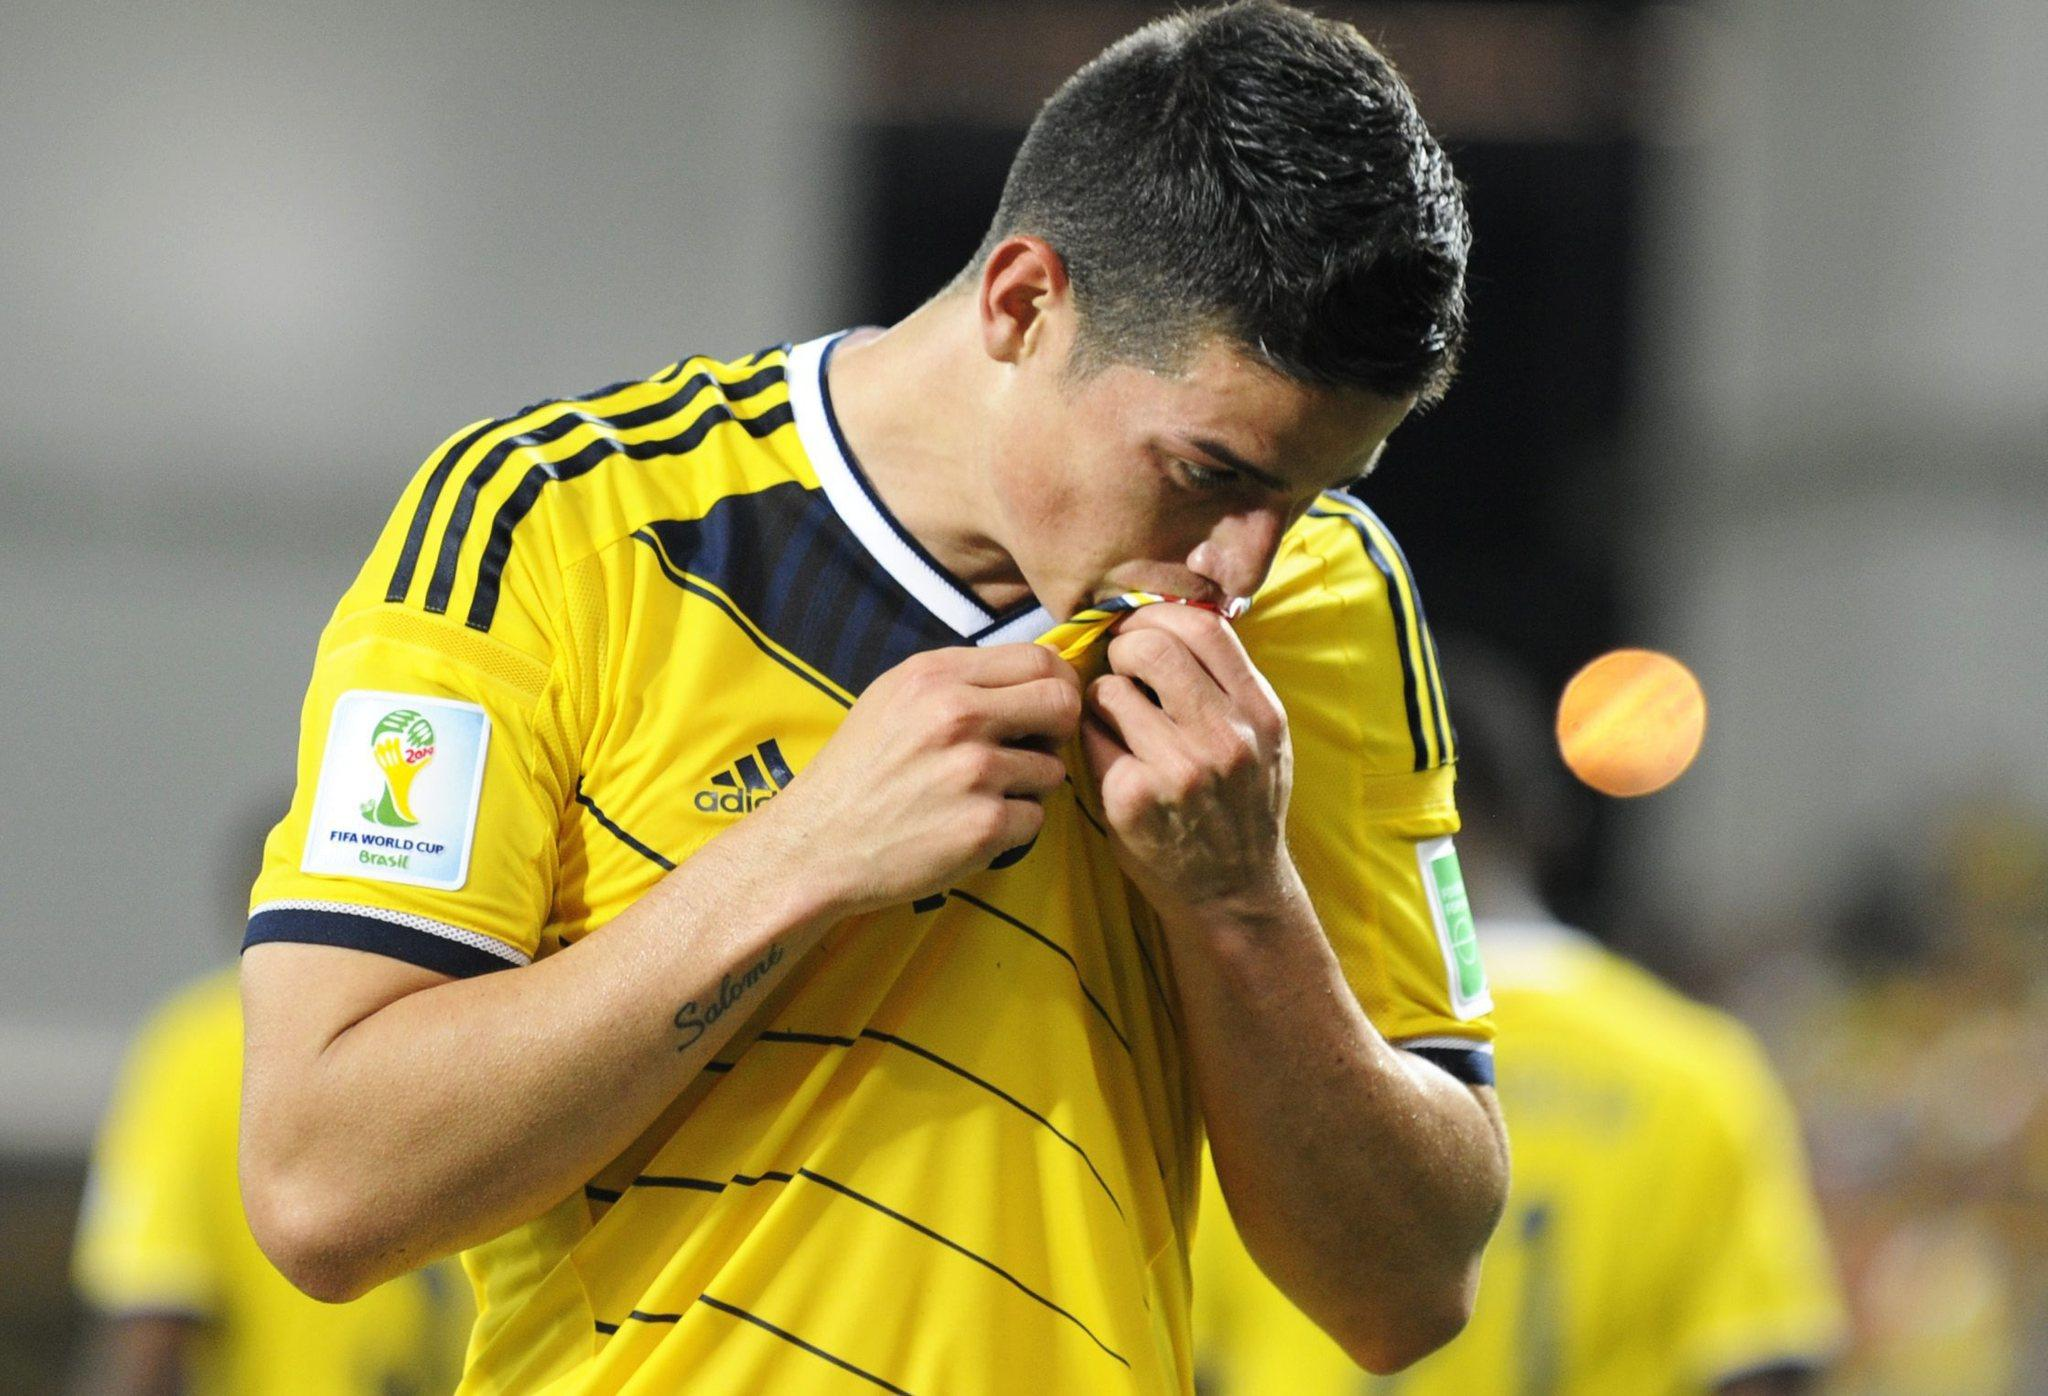 Colombia's James Rodriguez celebrates his goal during the FIFA World Cup 2014 Group C preliminary round match between Japan and Colombia.